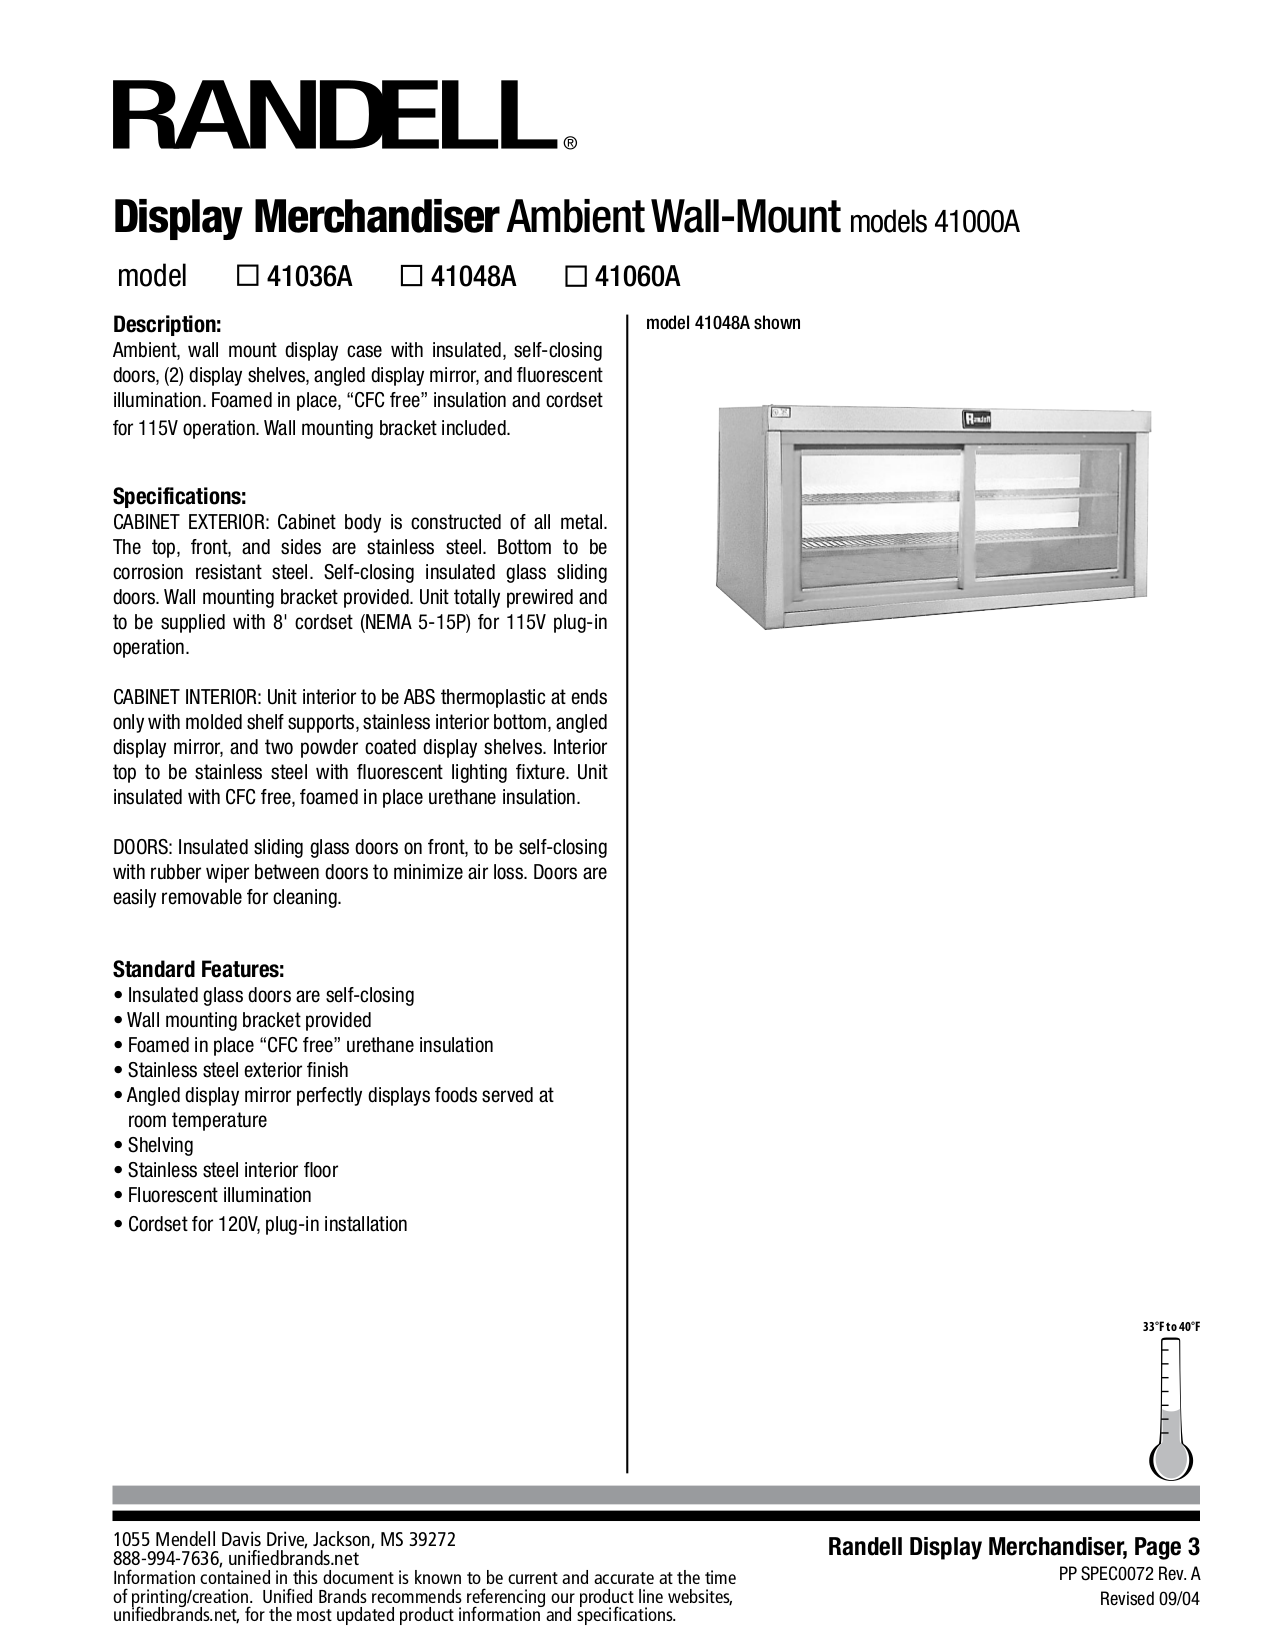 pdf for Randell Other 41048A Merchandisers manual